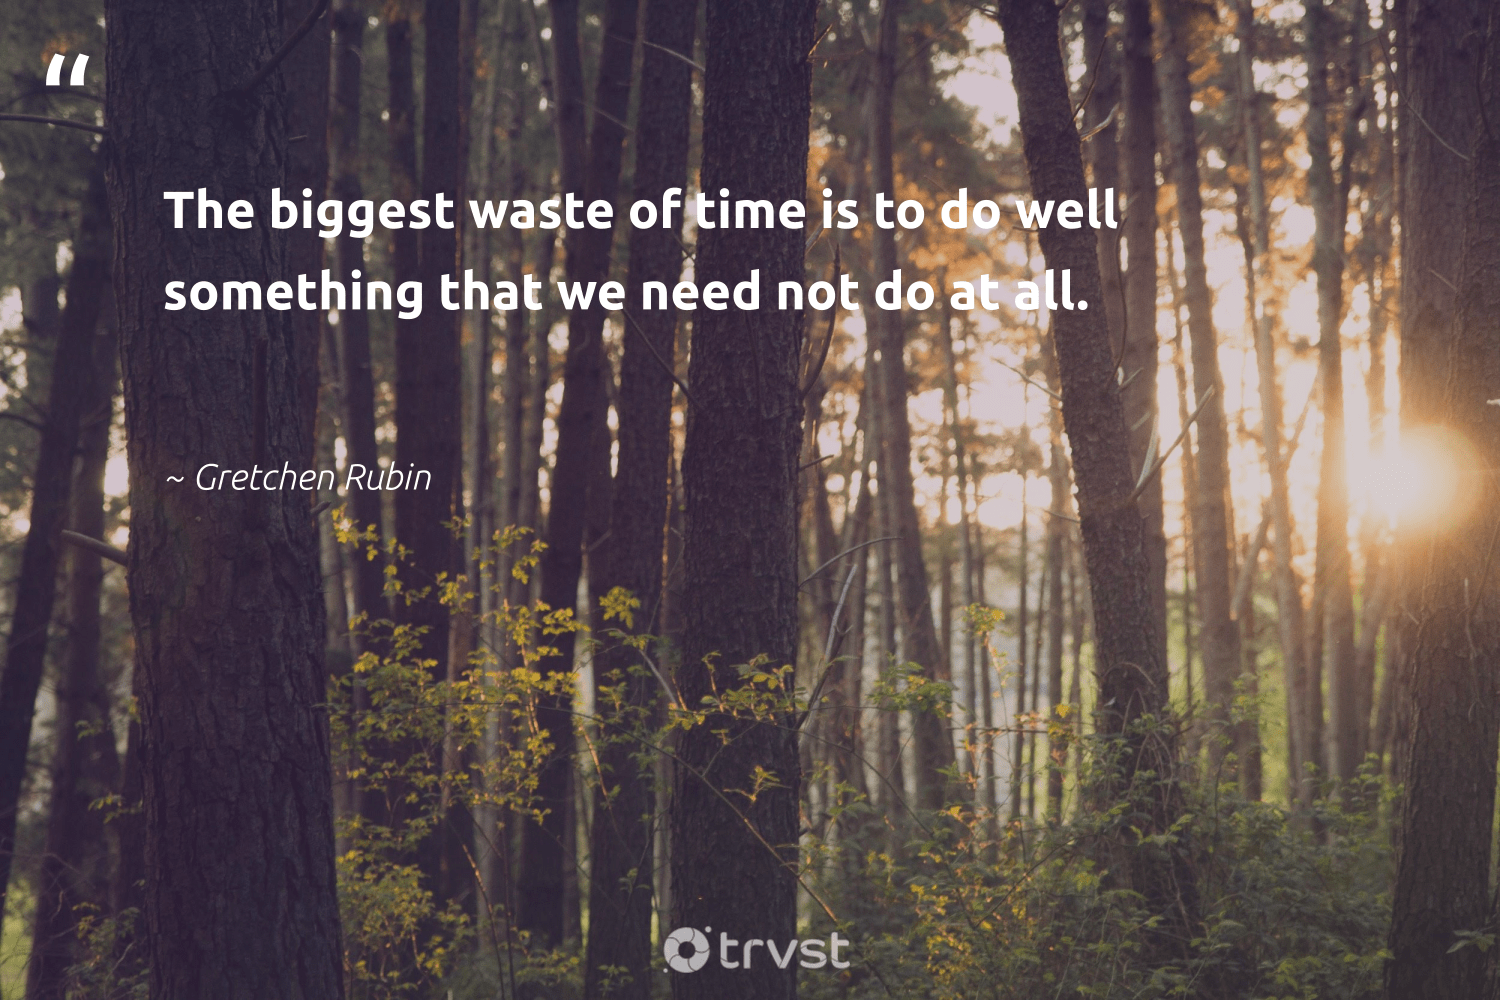 """The biggest waste of time is to do well something that we need not do at all.""  - Gretchen Rubin #trvst #quotes #waste #socialchange #gogreen #dogood #thinkgreen #betterplanet #dosomething #makeadifference #dotherightthing #weareallone"